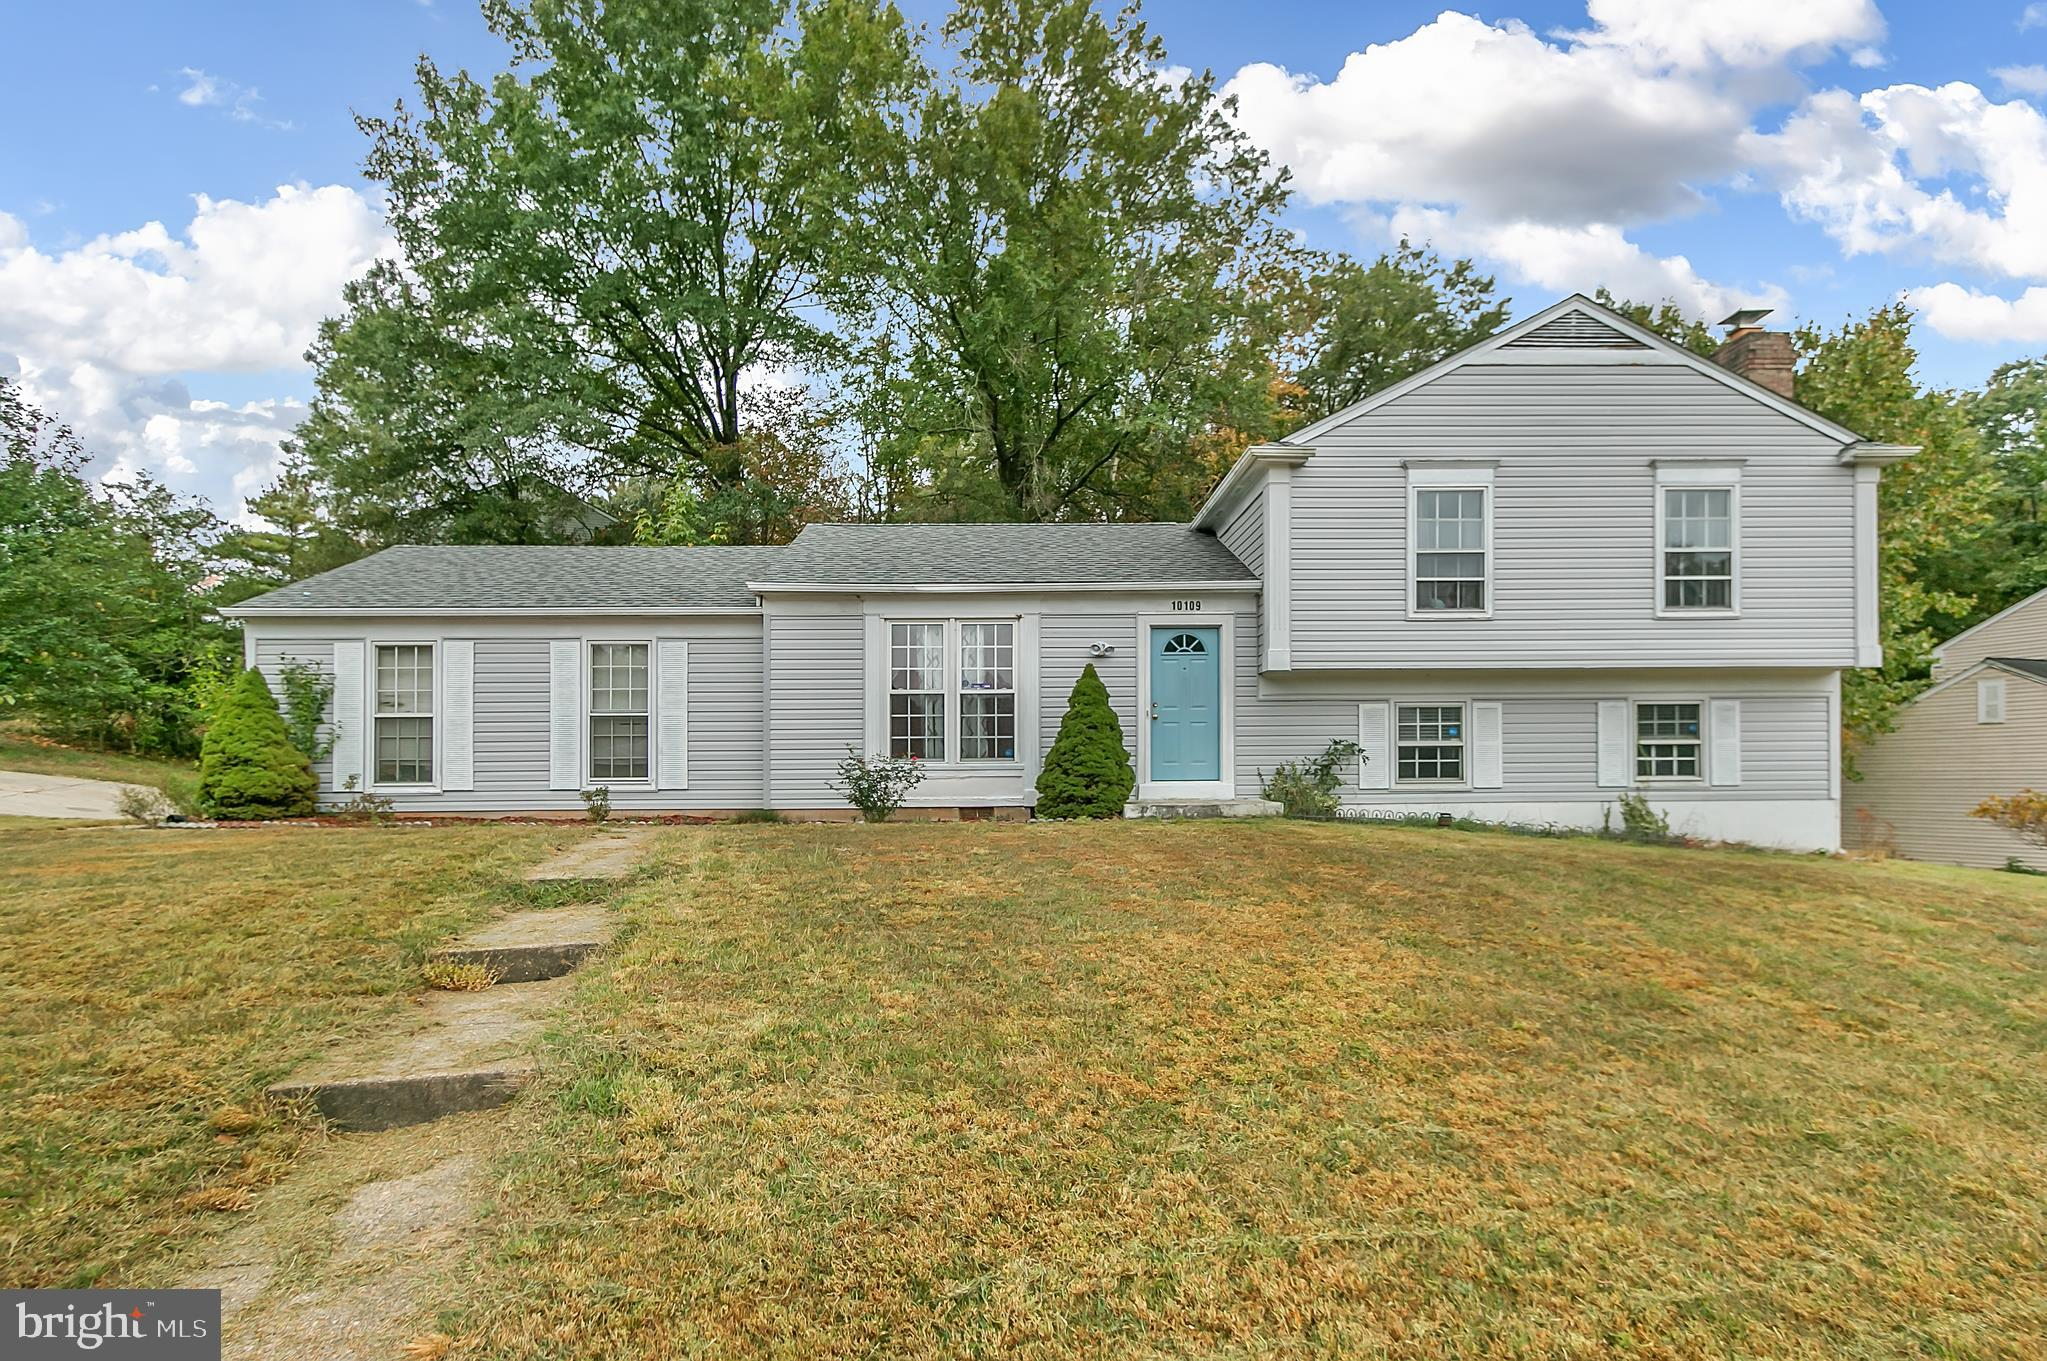 10109 MADRONAWOOD DRIVE, LAUREL, MD 20708